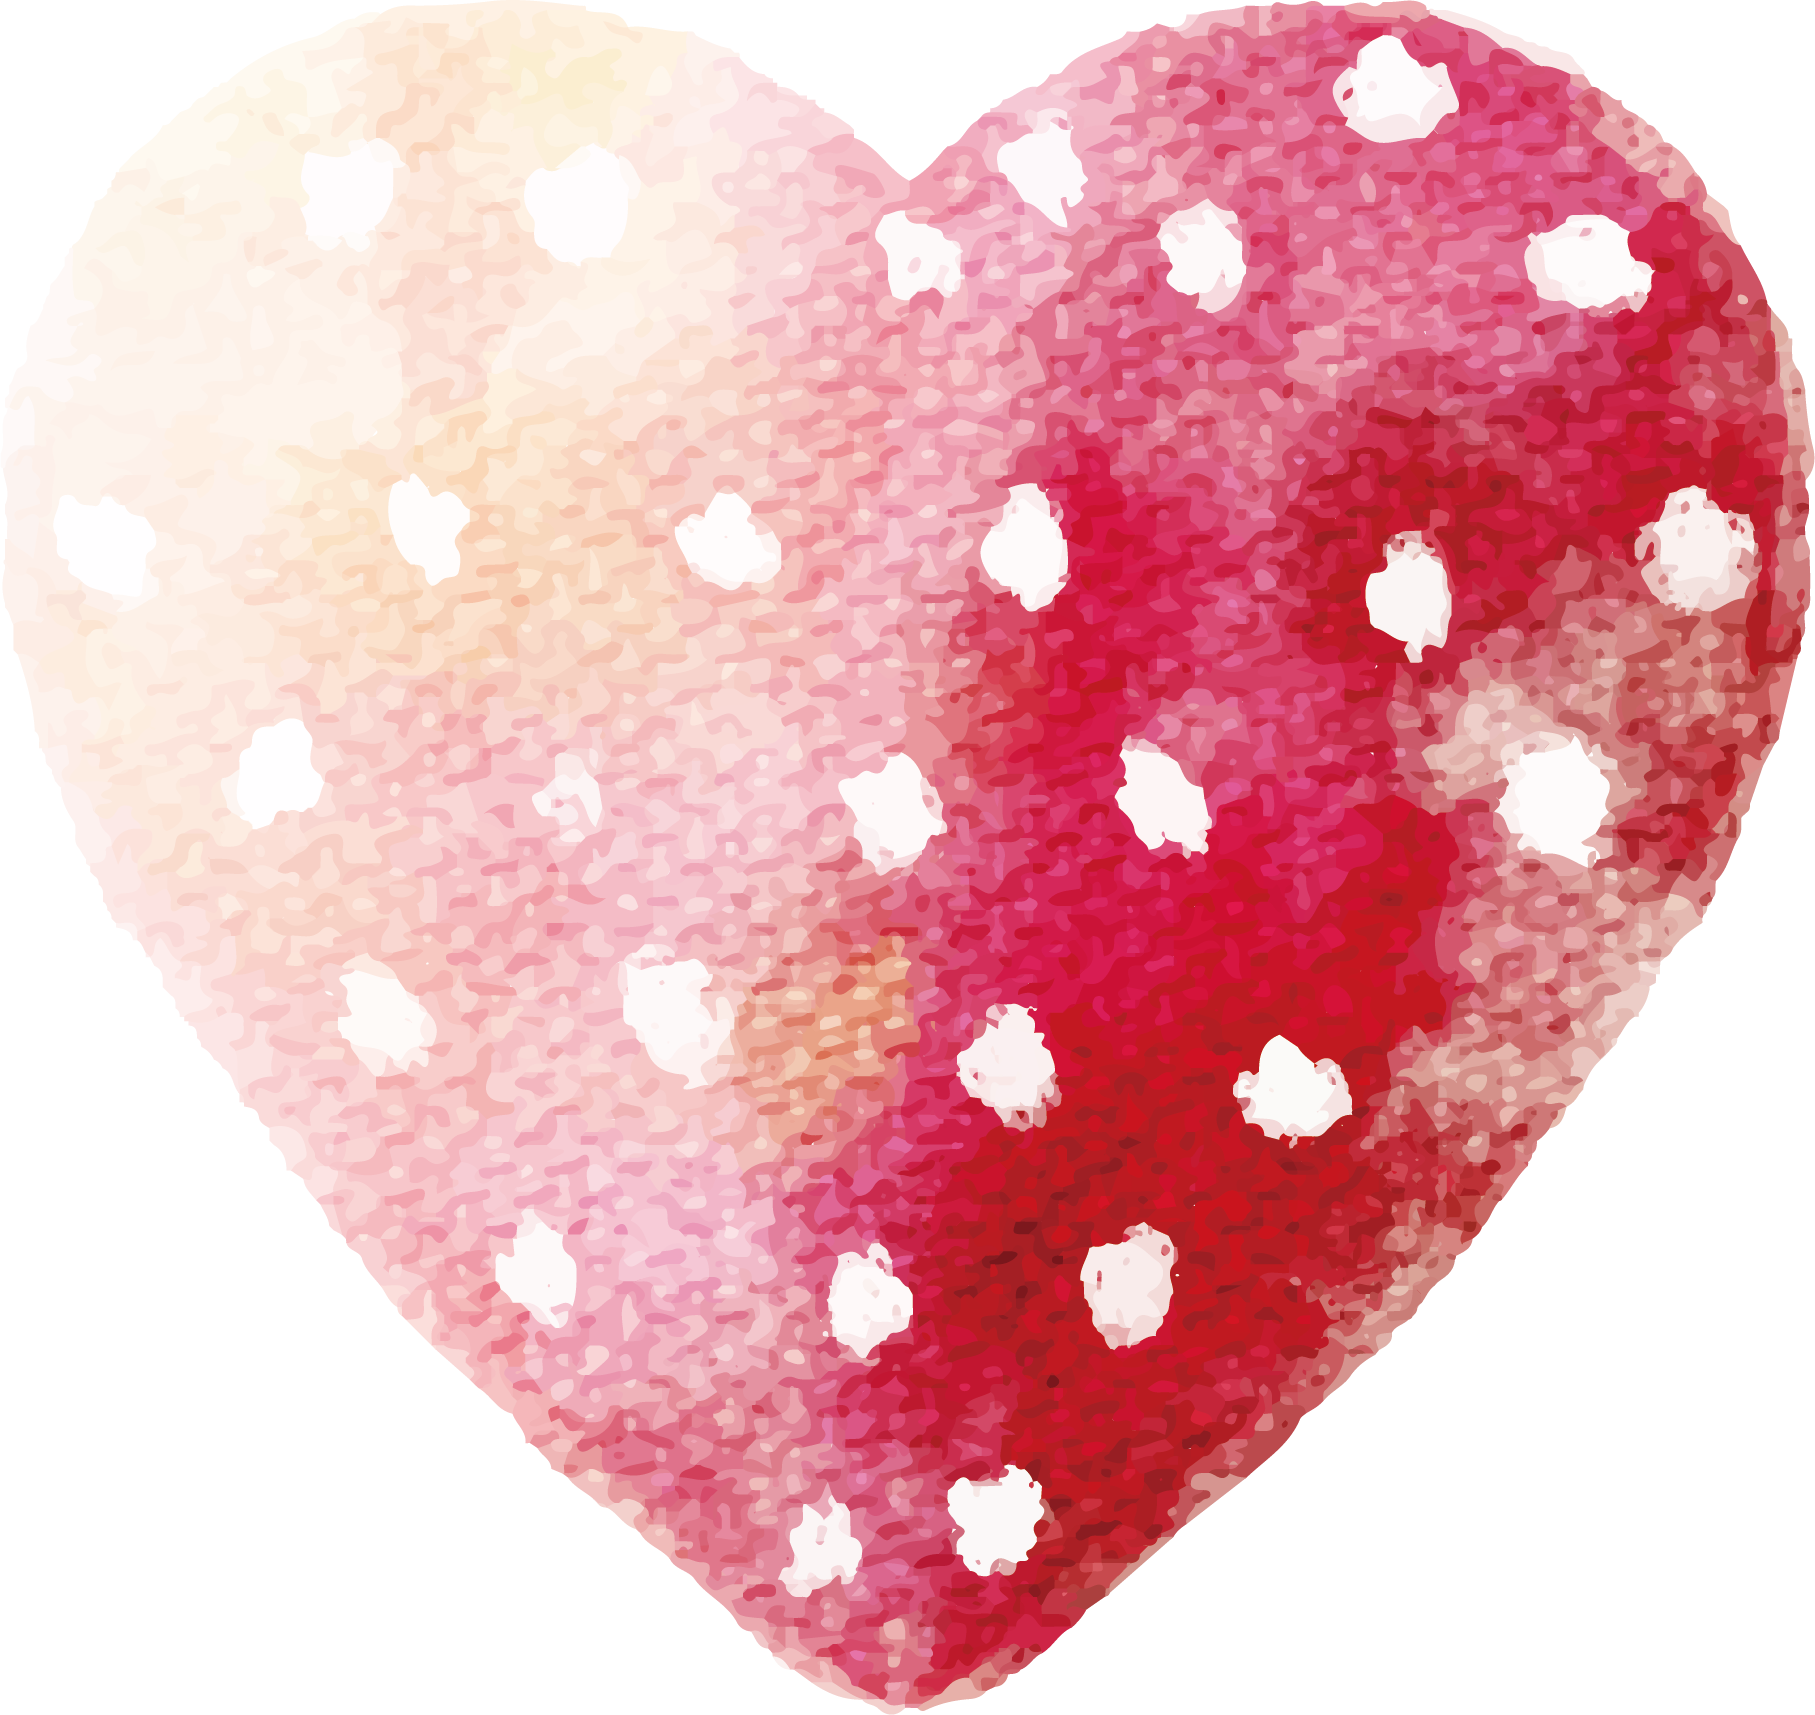 Heart watercolor png. Painting red transprent free